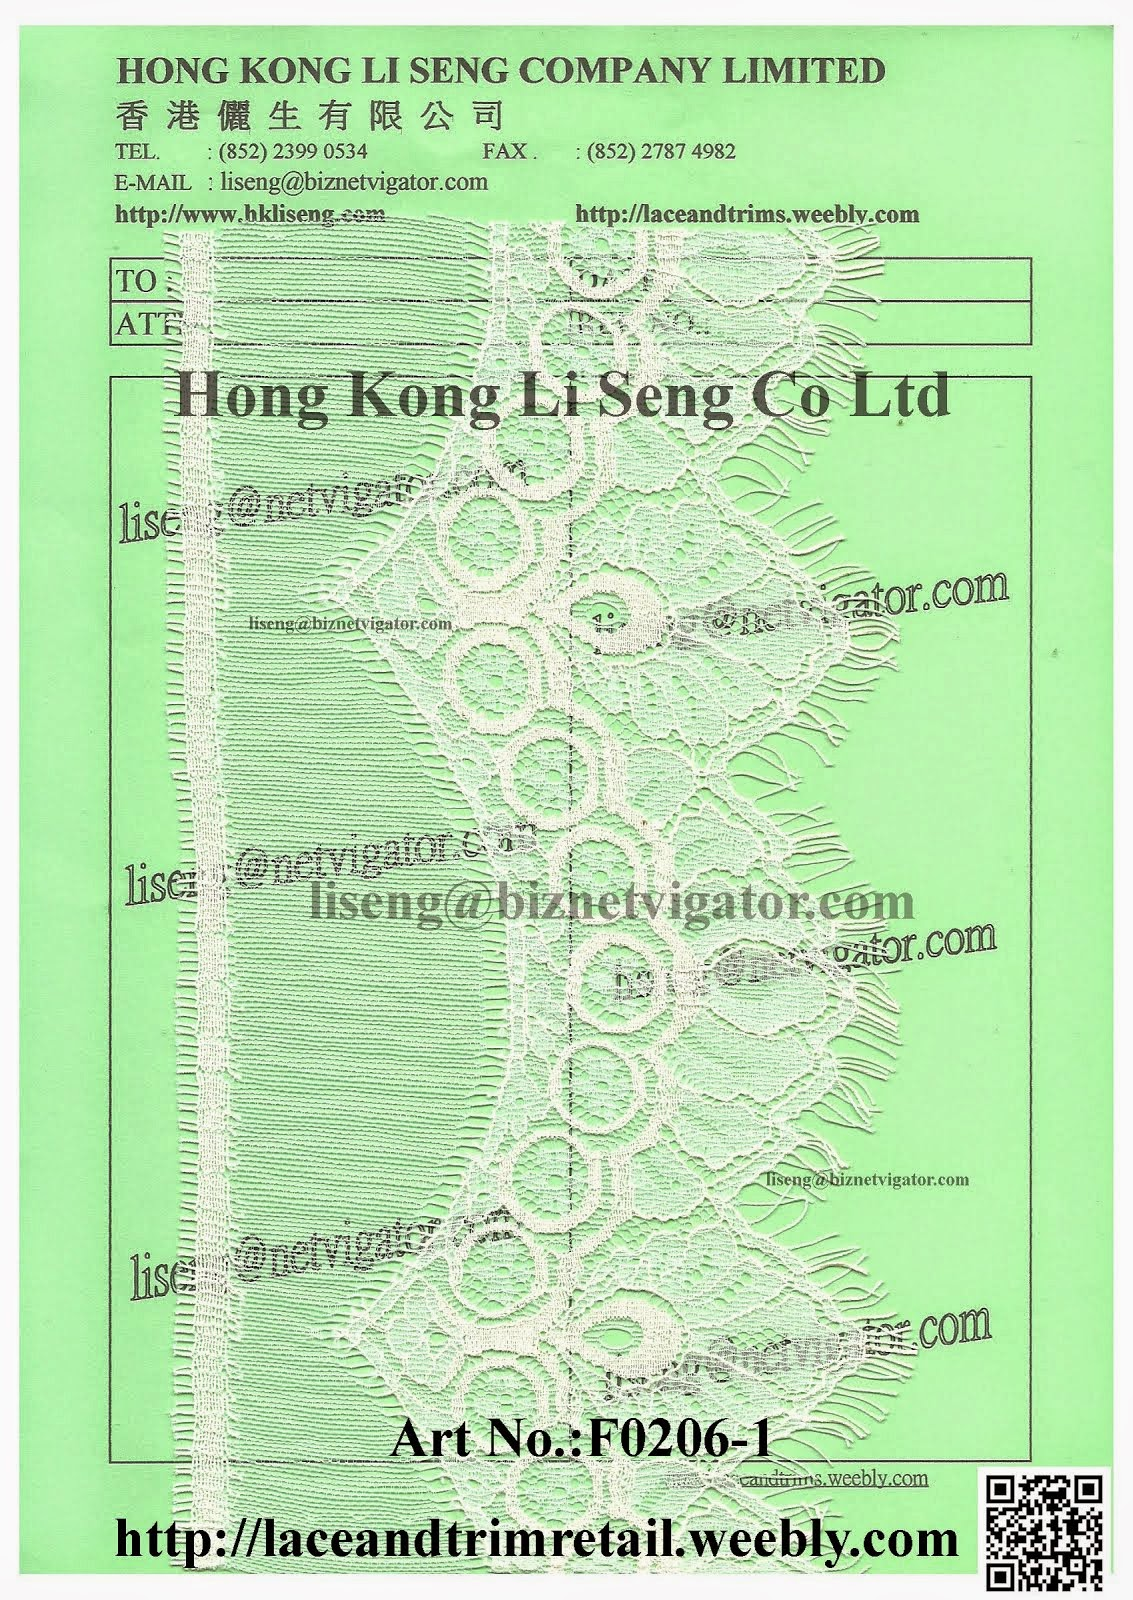 Producing Eyelash Lace Pattern - Hong Kong Li Seng Co Ltd